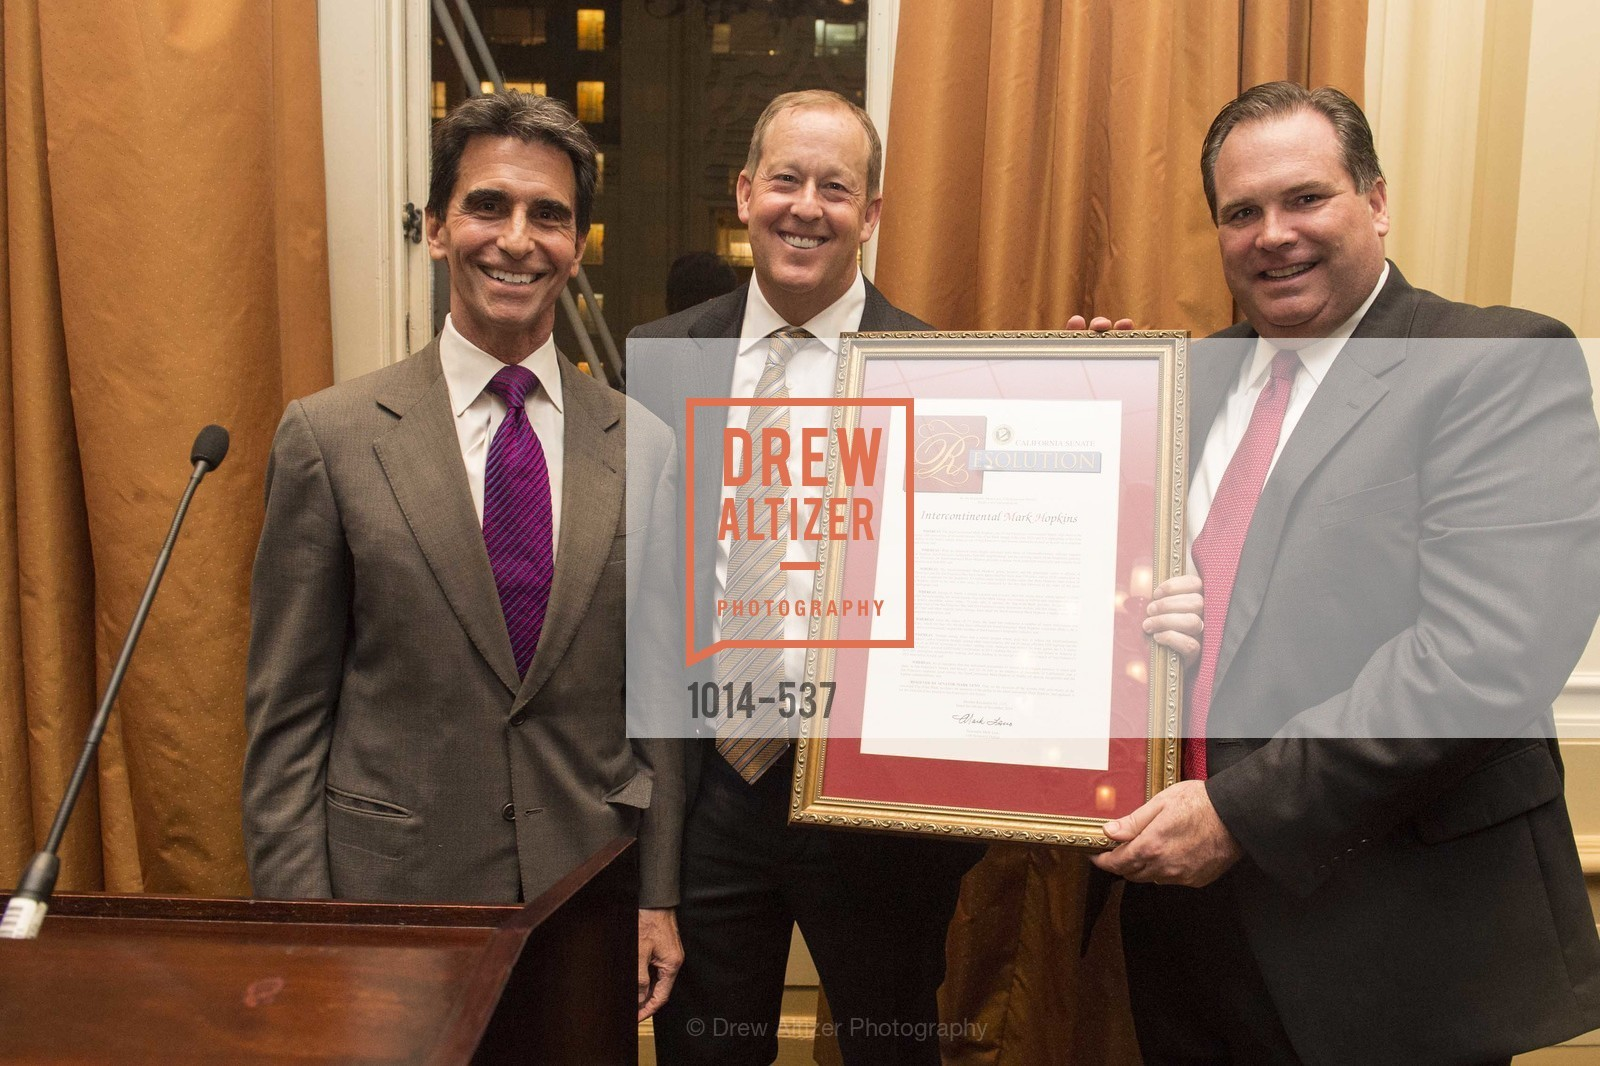 Mark Leno, Michael Rosenfeld, John Brady, TOP OF THE MARK'S 75TH Anniversary Party, US, November 7th, 2014,Drew Altizer, Drew Altizer Photography, full-service agency, private events, San Francisco photographer, photographer california